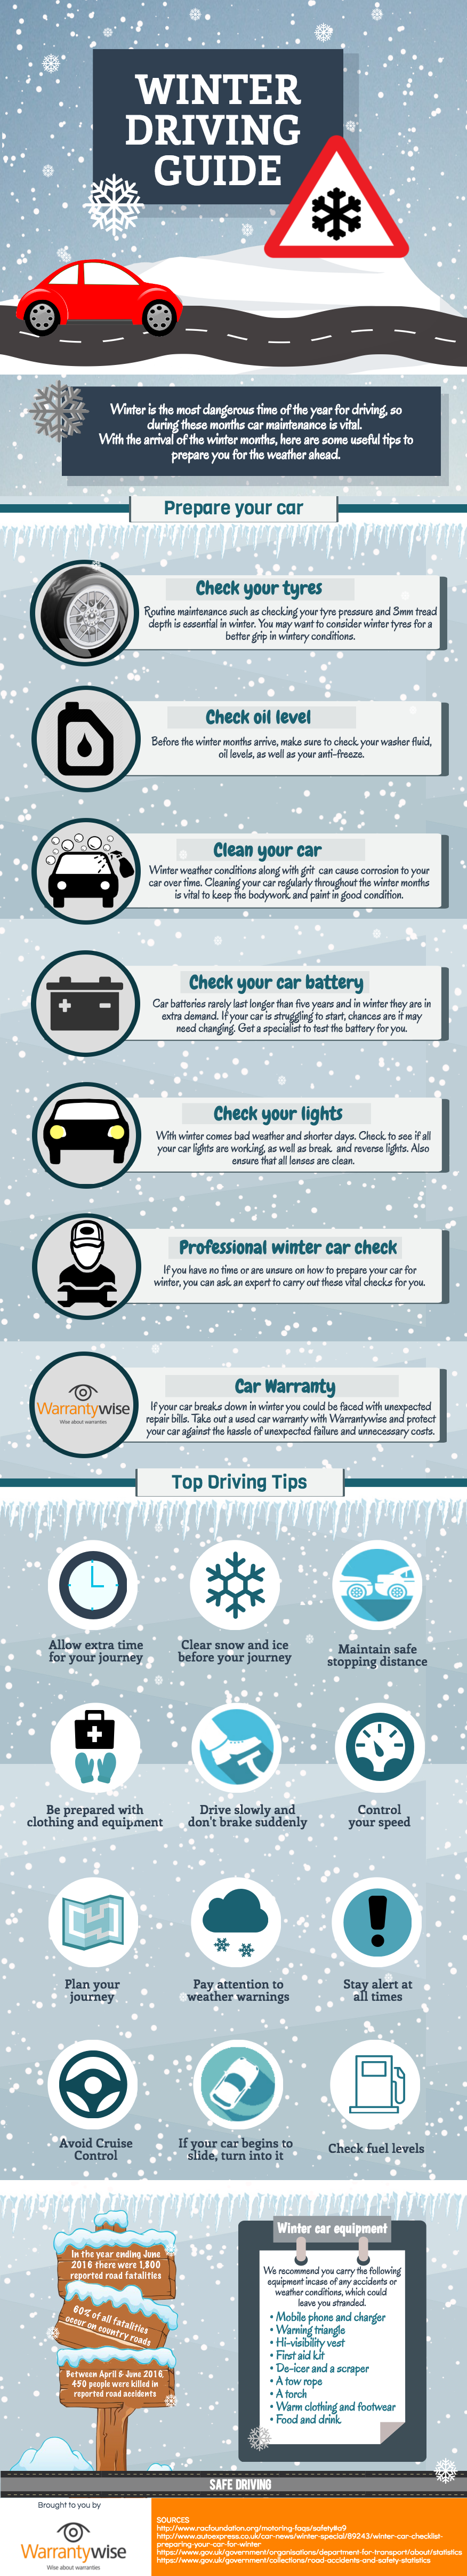 Winter Driving Guide Infographic